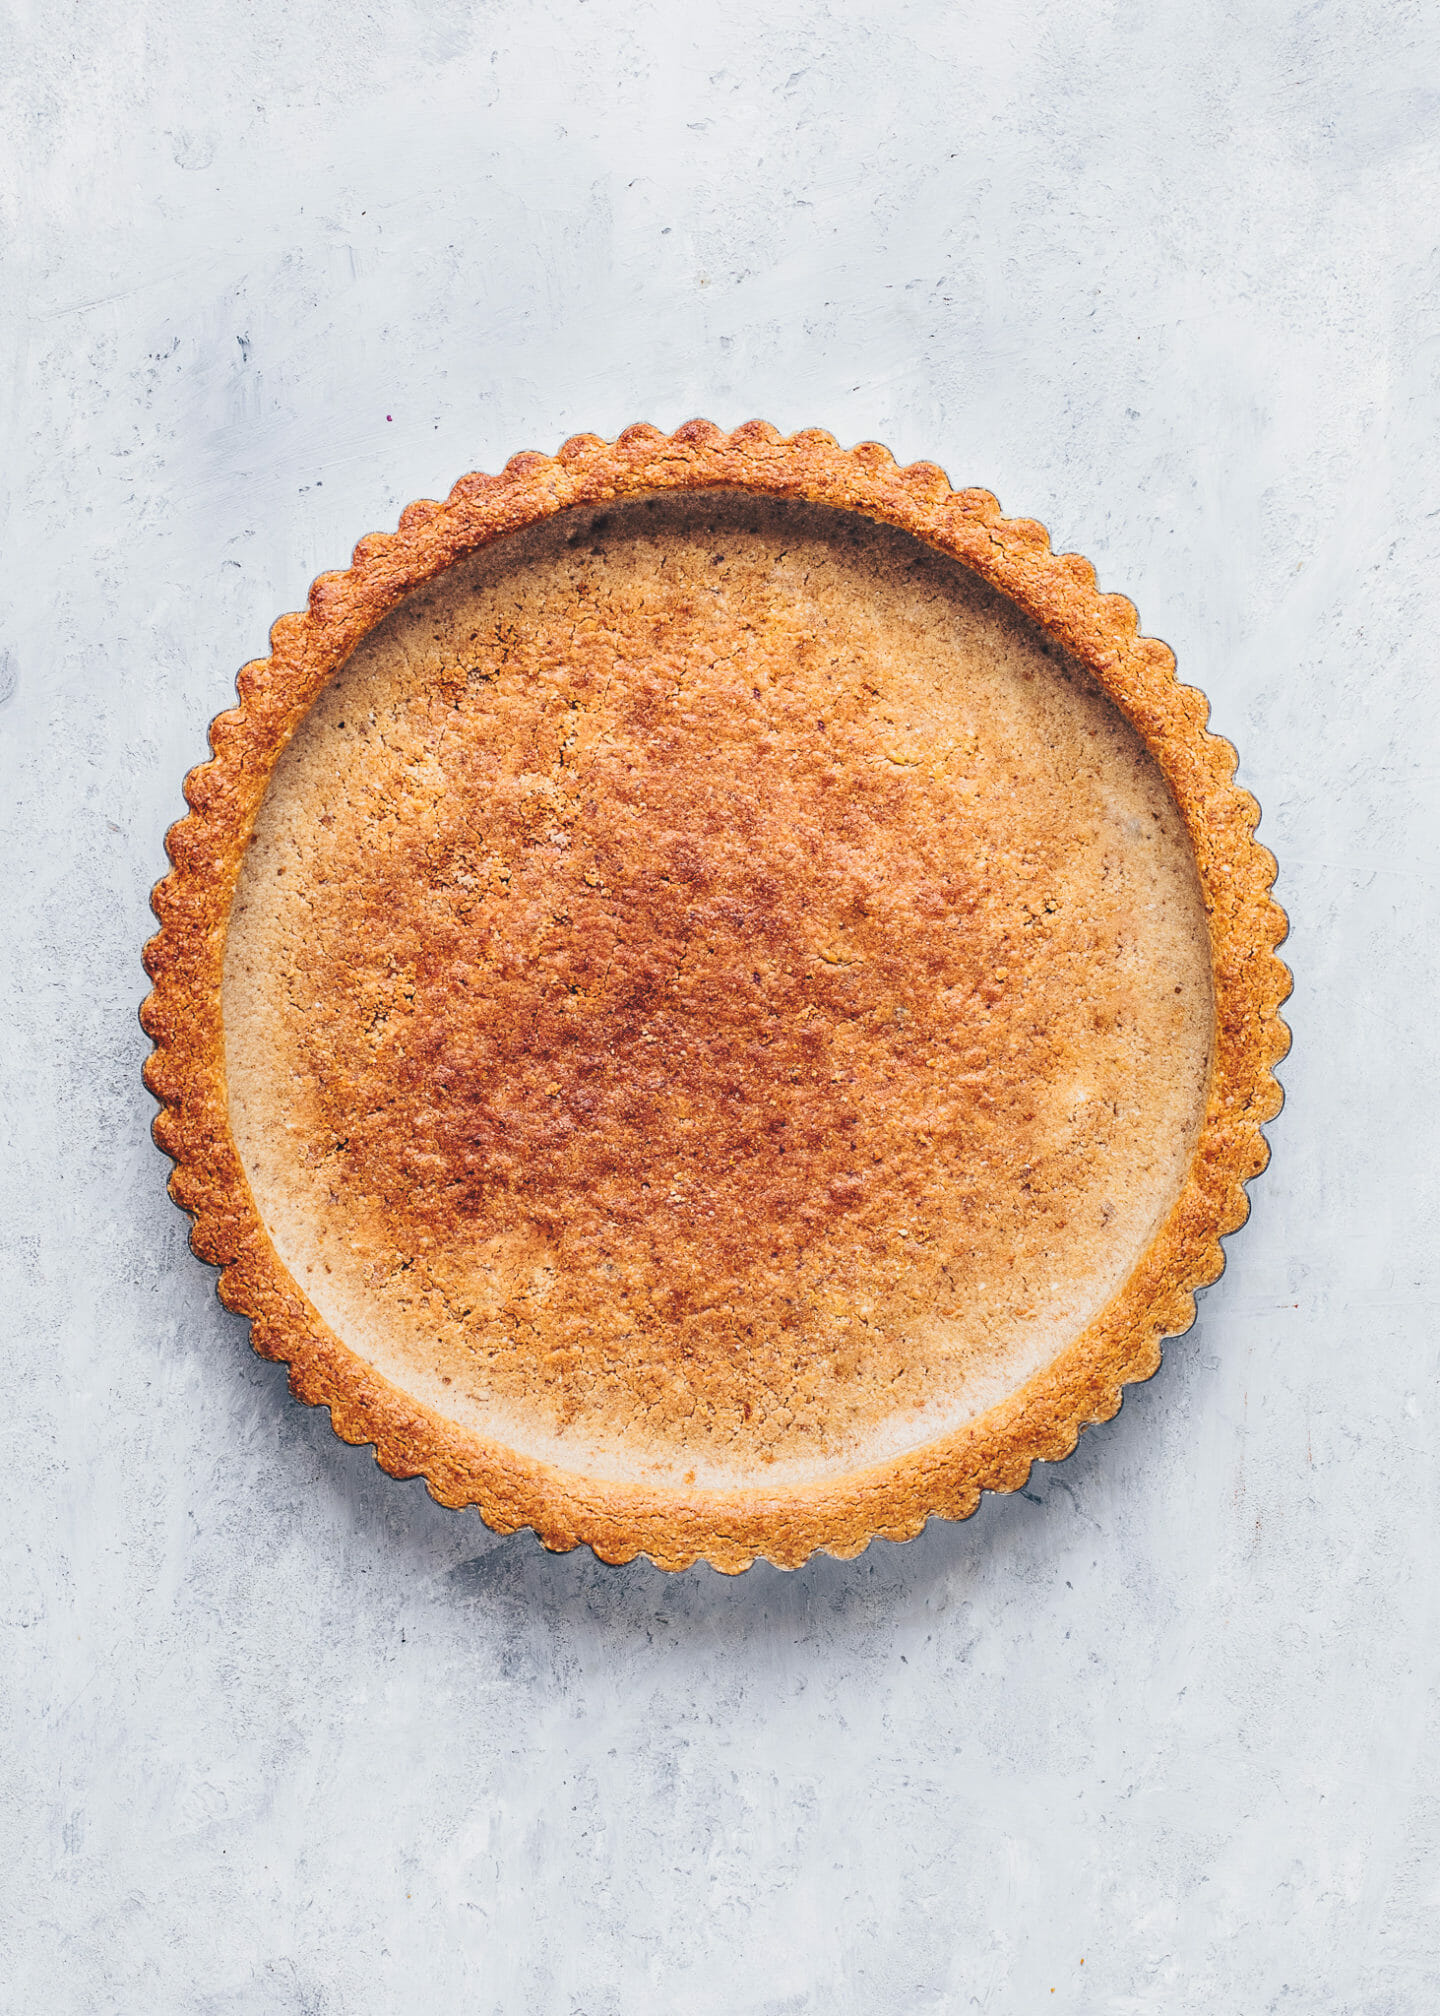 Baked gluten-free tart crust for lemon pie